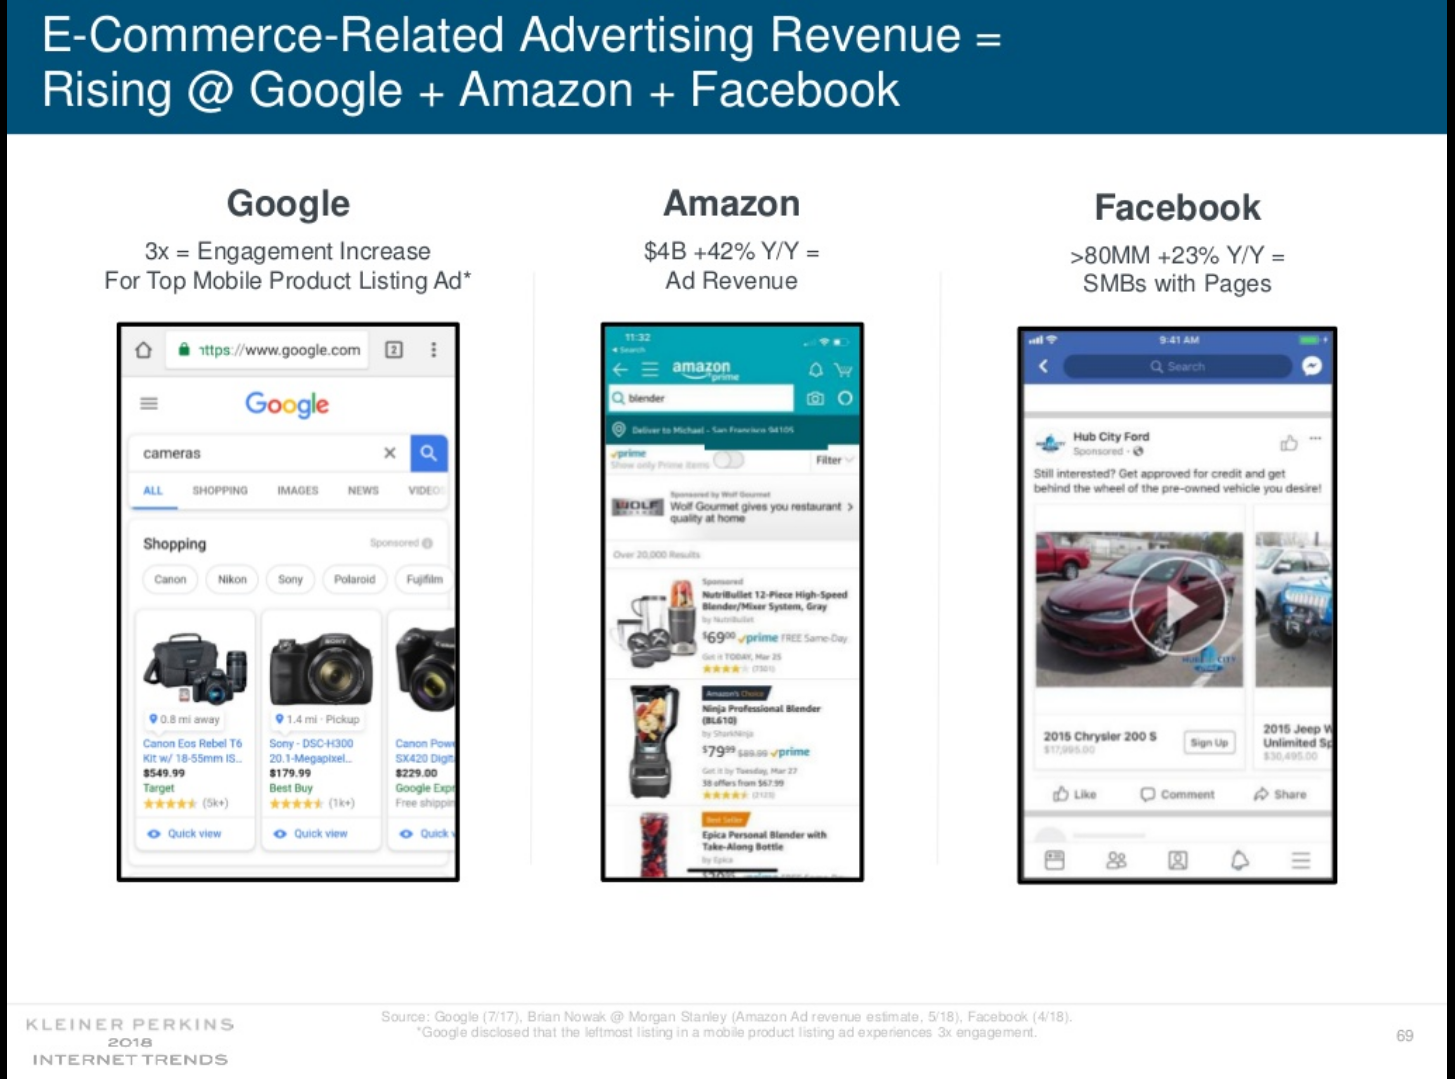 Slide 69 from Kleiner Perkins Caufield & Byers' Internet Trends 2018 report shows the growth in ecommerce-related advertising on each of Google, Amazon, and Facebook. <em>Click image to enlarge.</em>